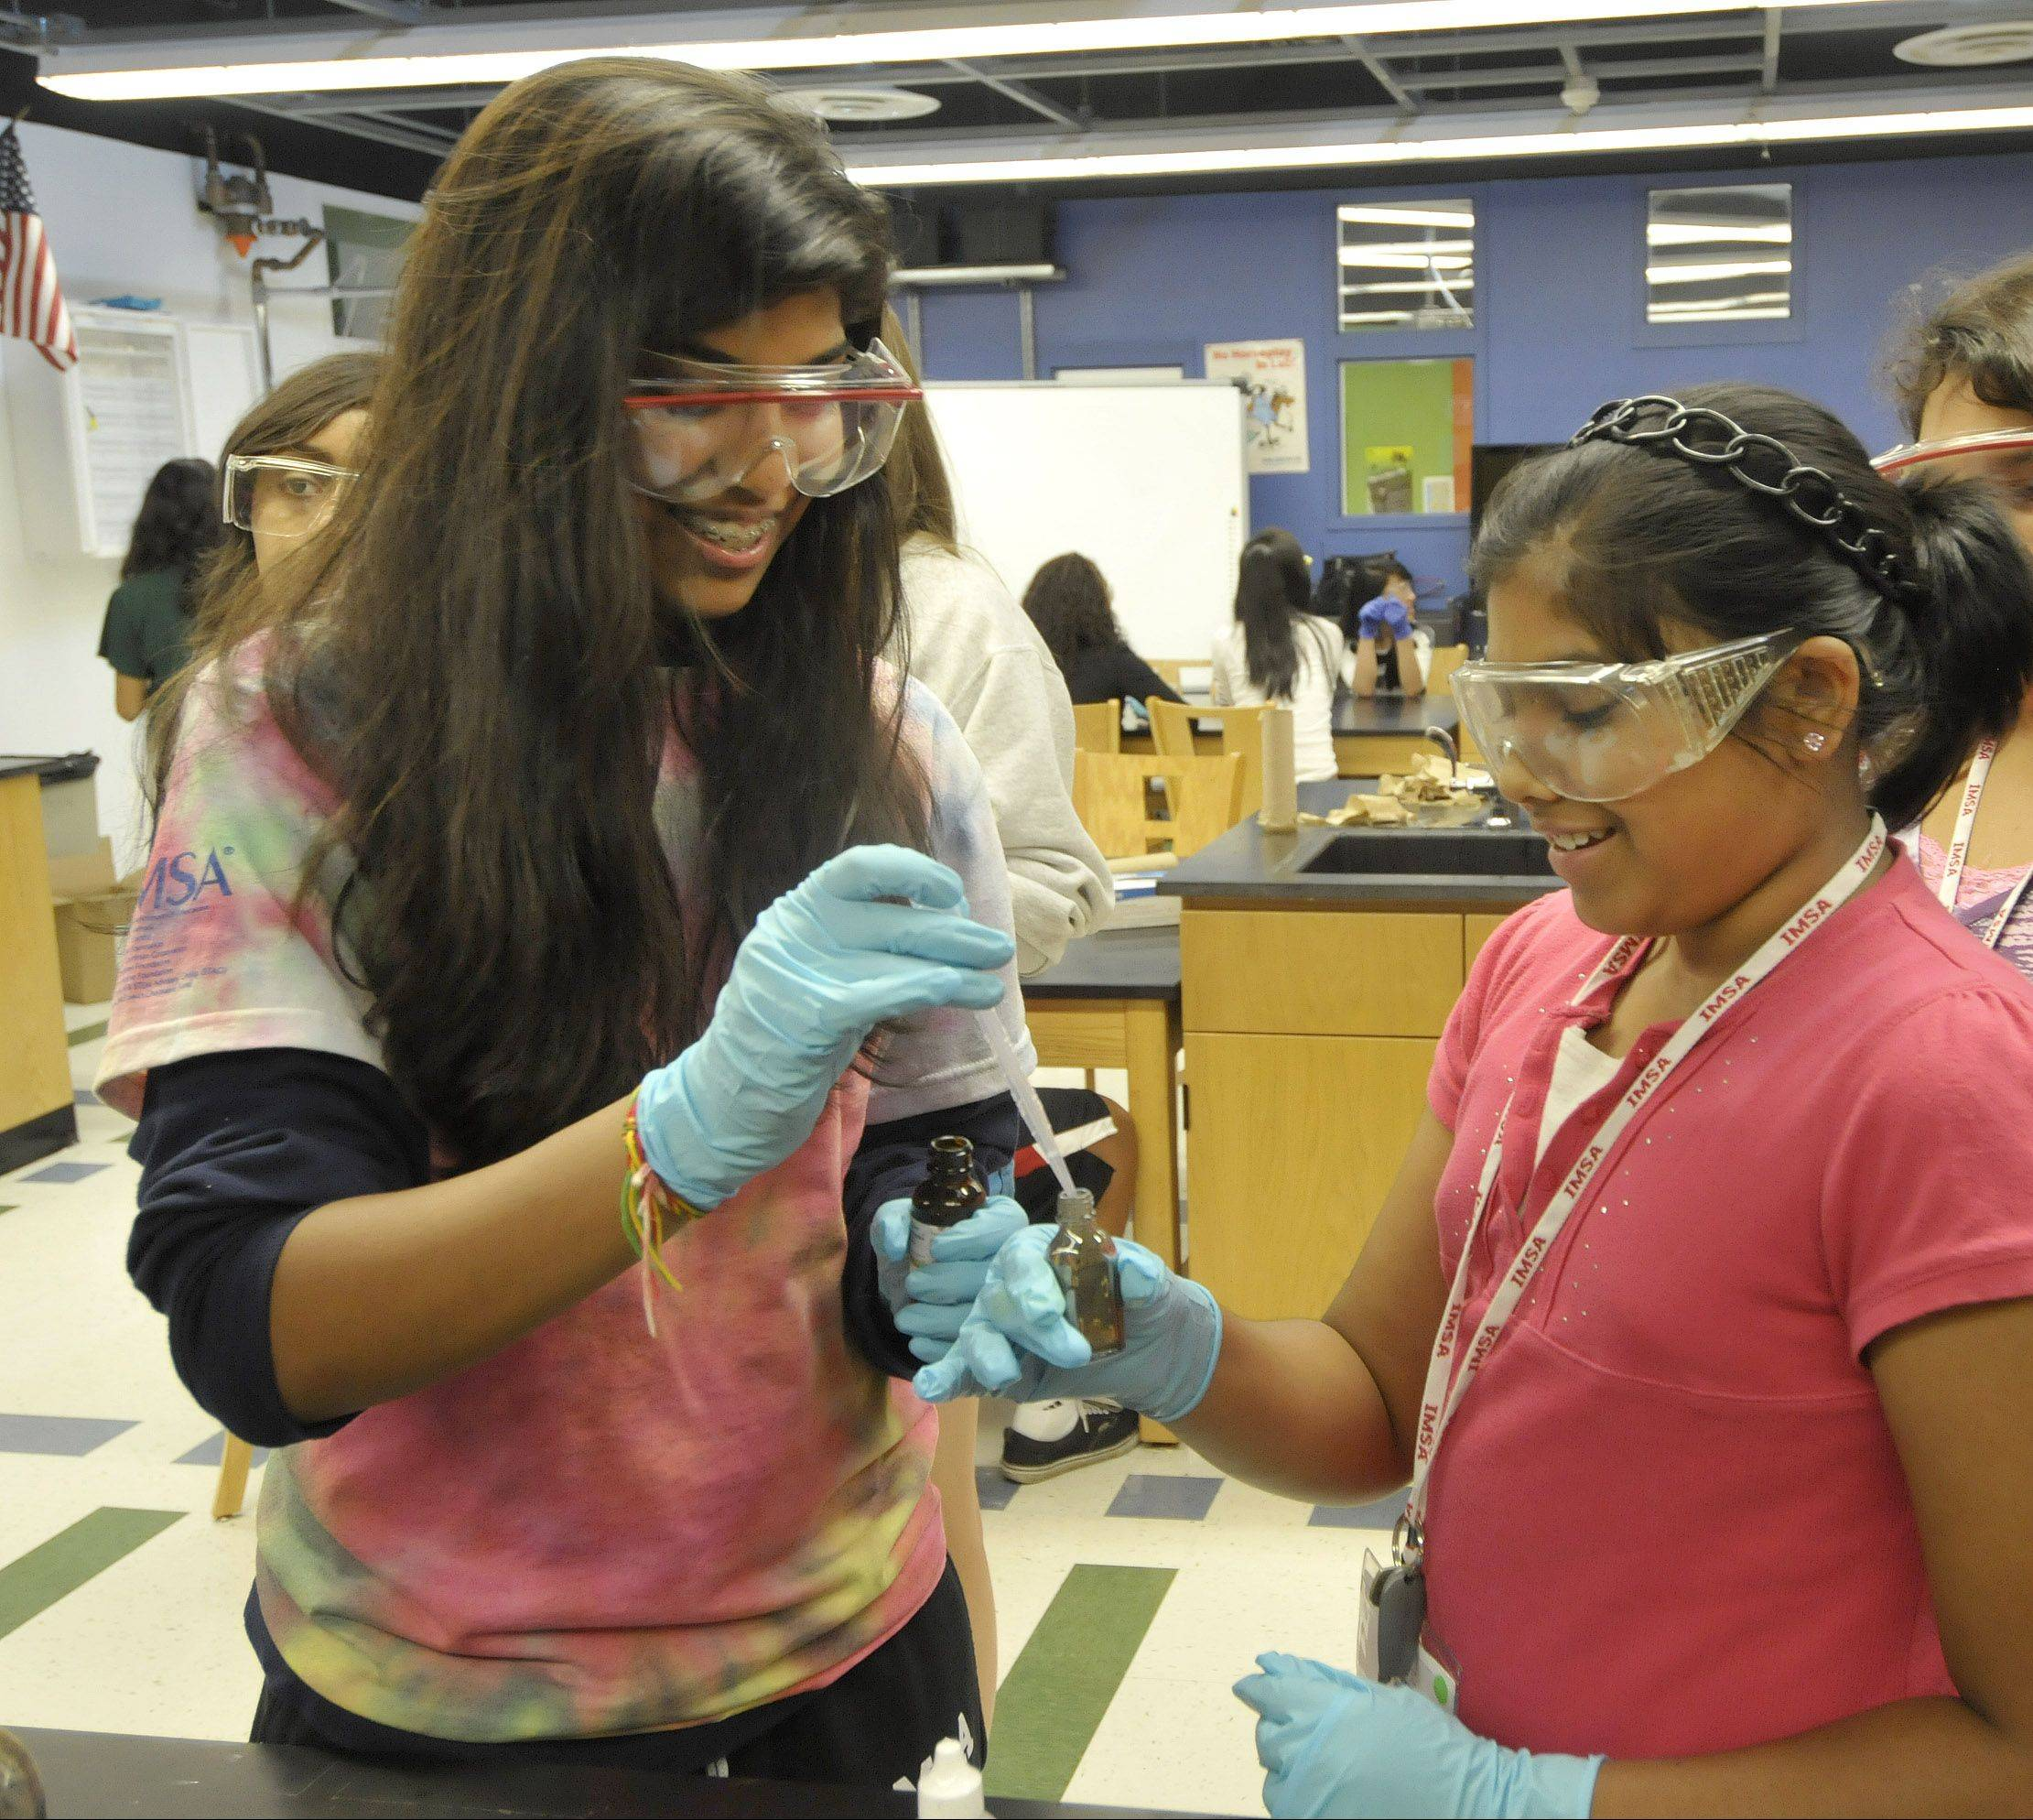 Illinois Mathematics and Science Academy student volunteer Sai Talluru of Aurora mixes two chemicals in a bottle for Science@IMSA camp student Isha Tyle. As the civil rights law Title IX turned 40, some say ensuring gender equality in science, technology, engineering and math education will become the next focus.